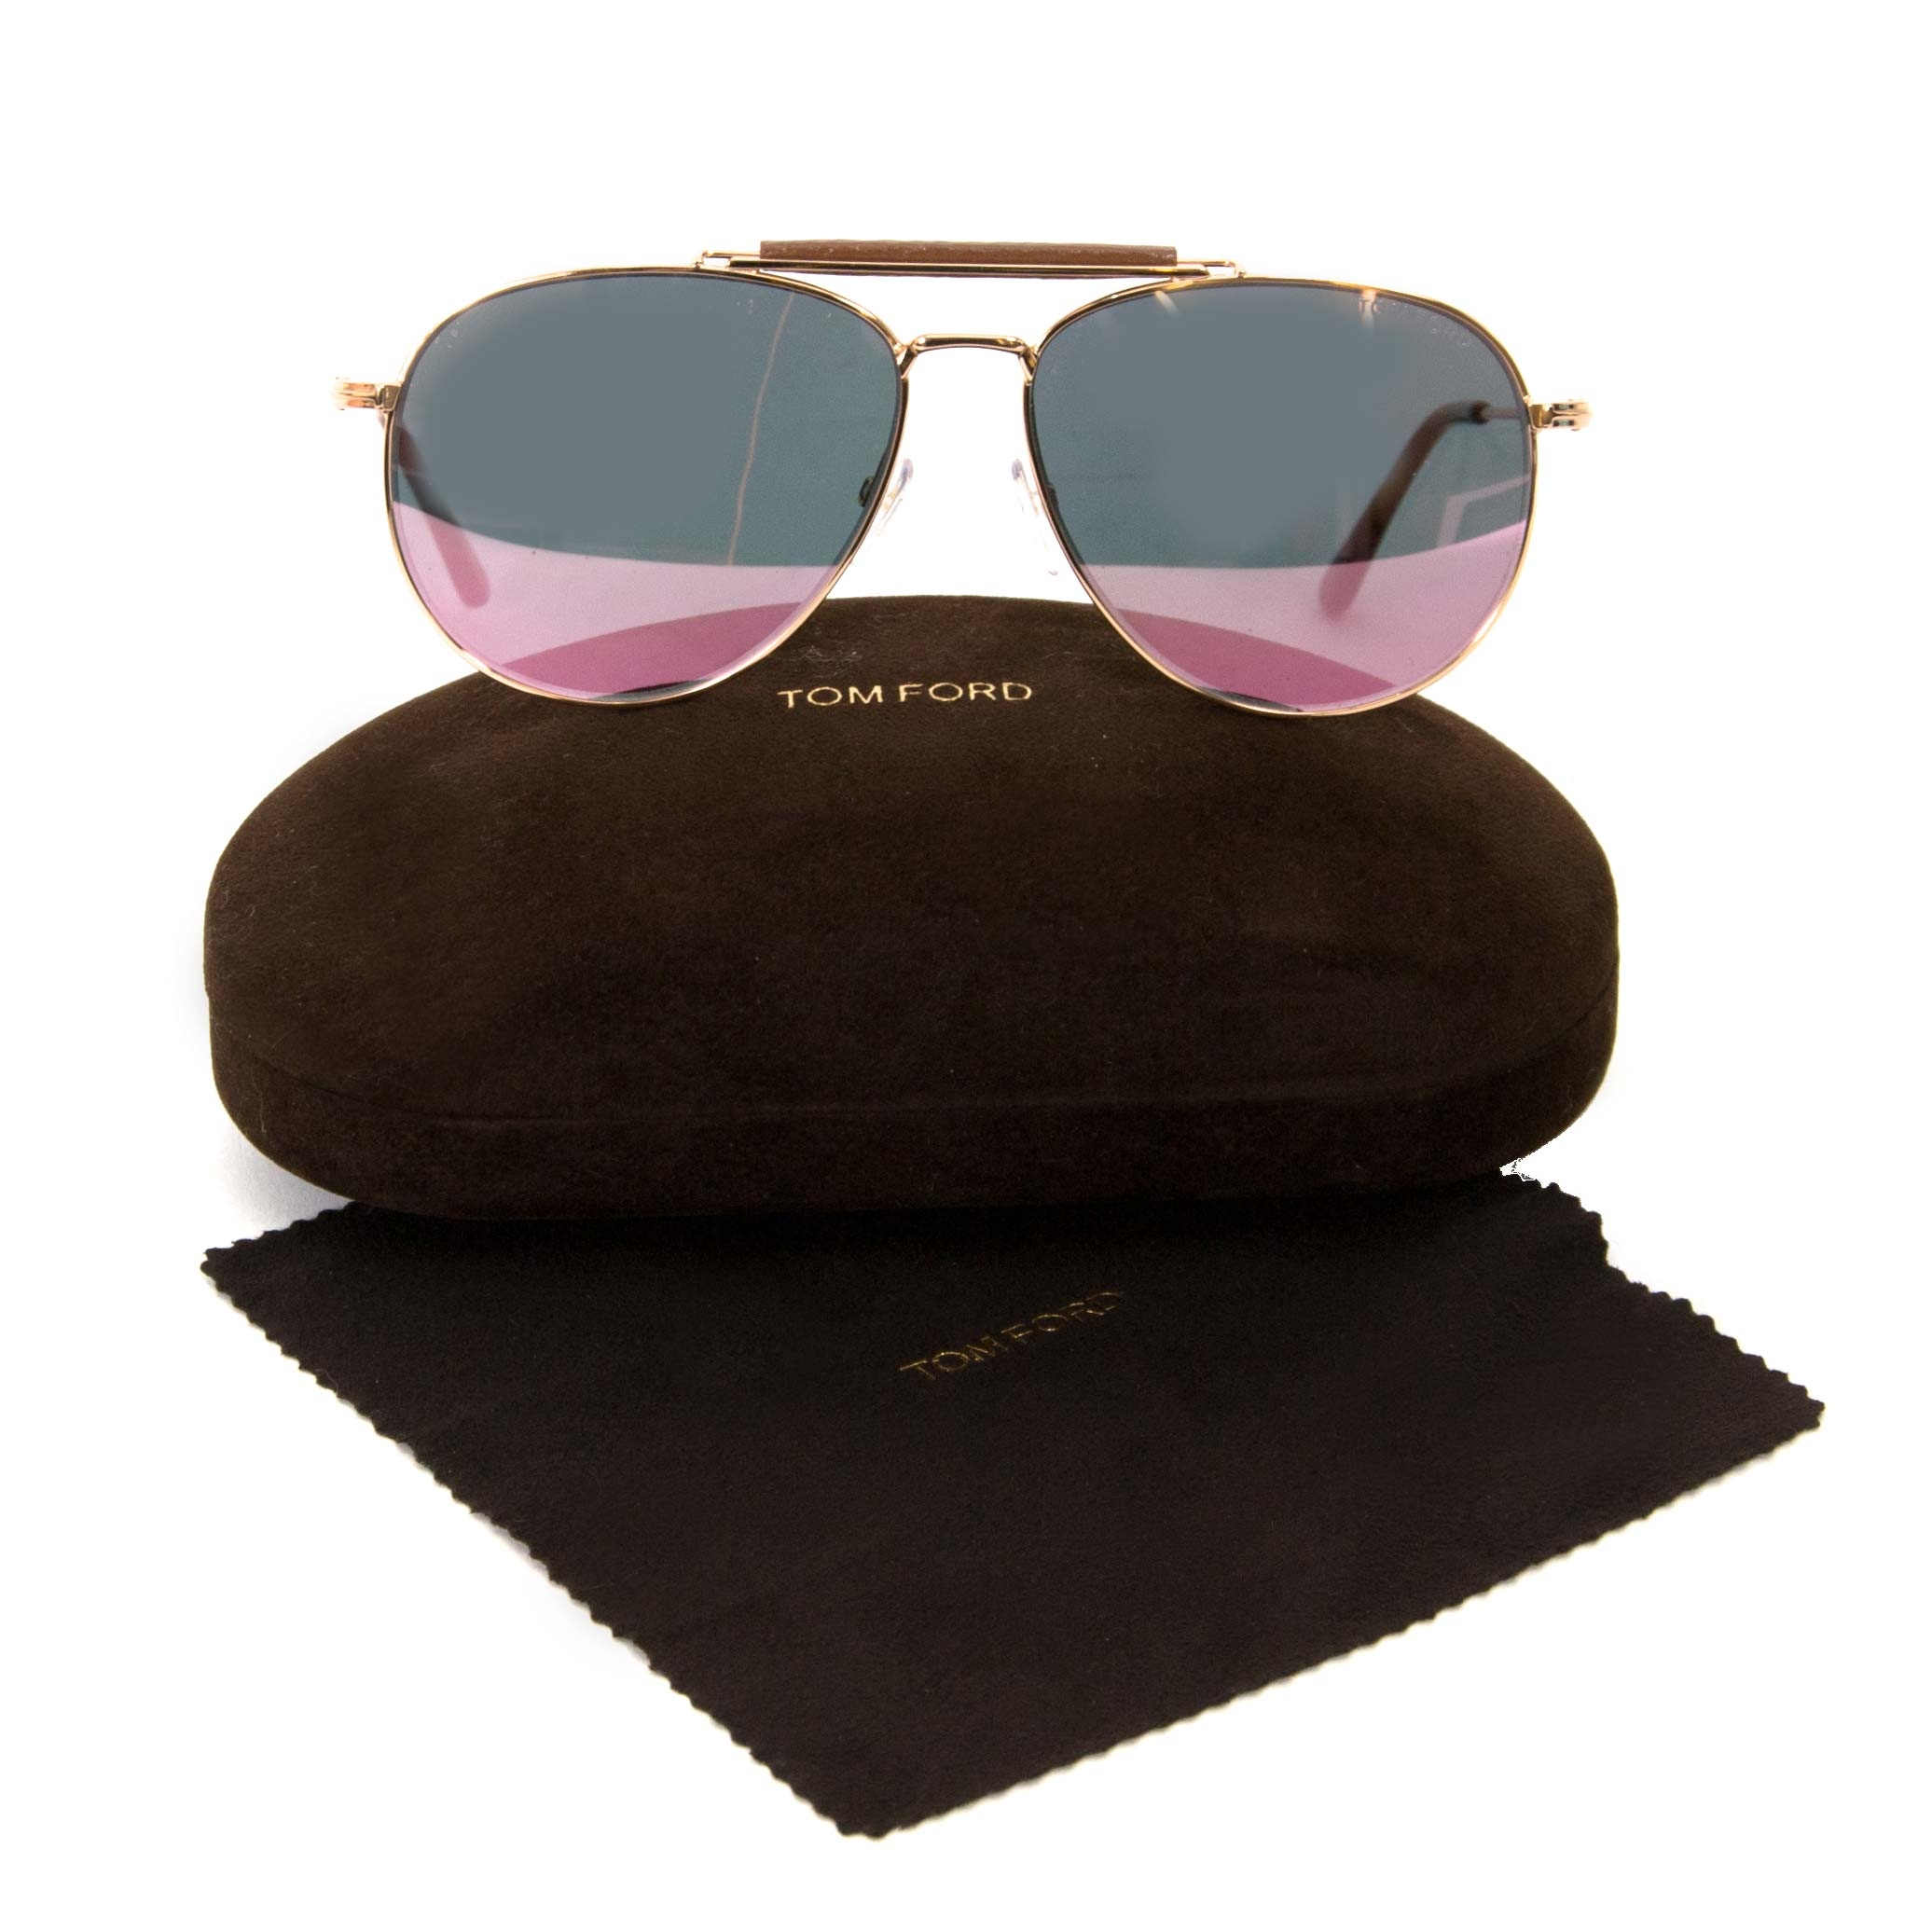 f1a77628428d ... tom ford mirror rose gold sean sunglasses now for sale at labellov  vintage fashion webshop belgium